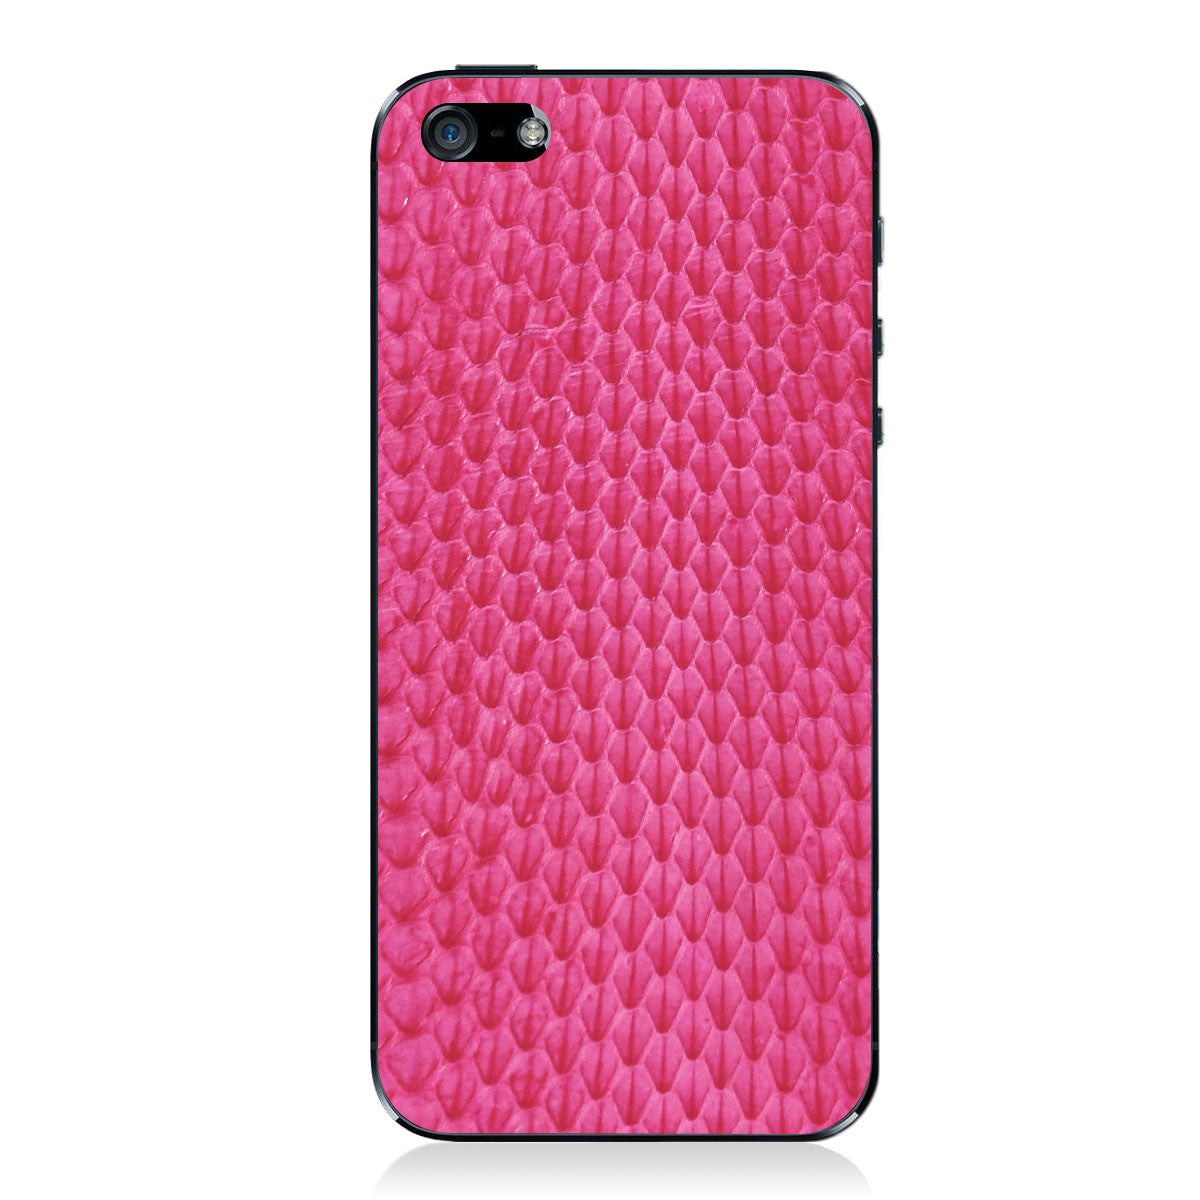 Pink Whip Snake iPhone 5 - 5S - SE Leather Skin